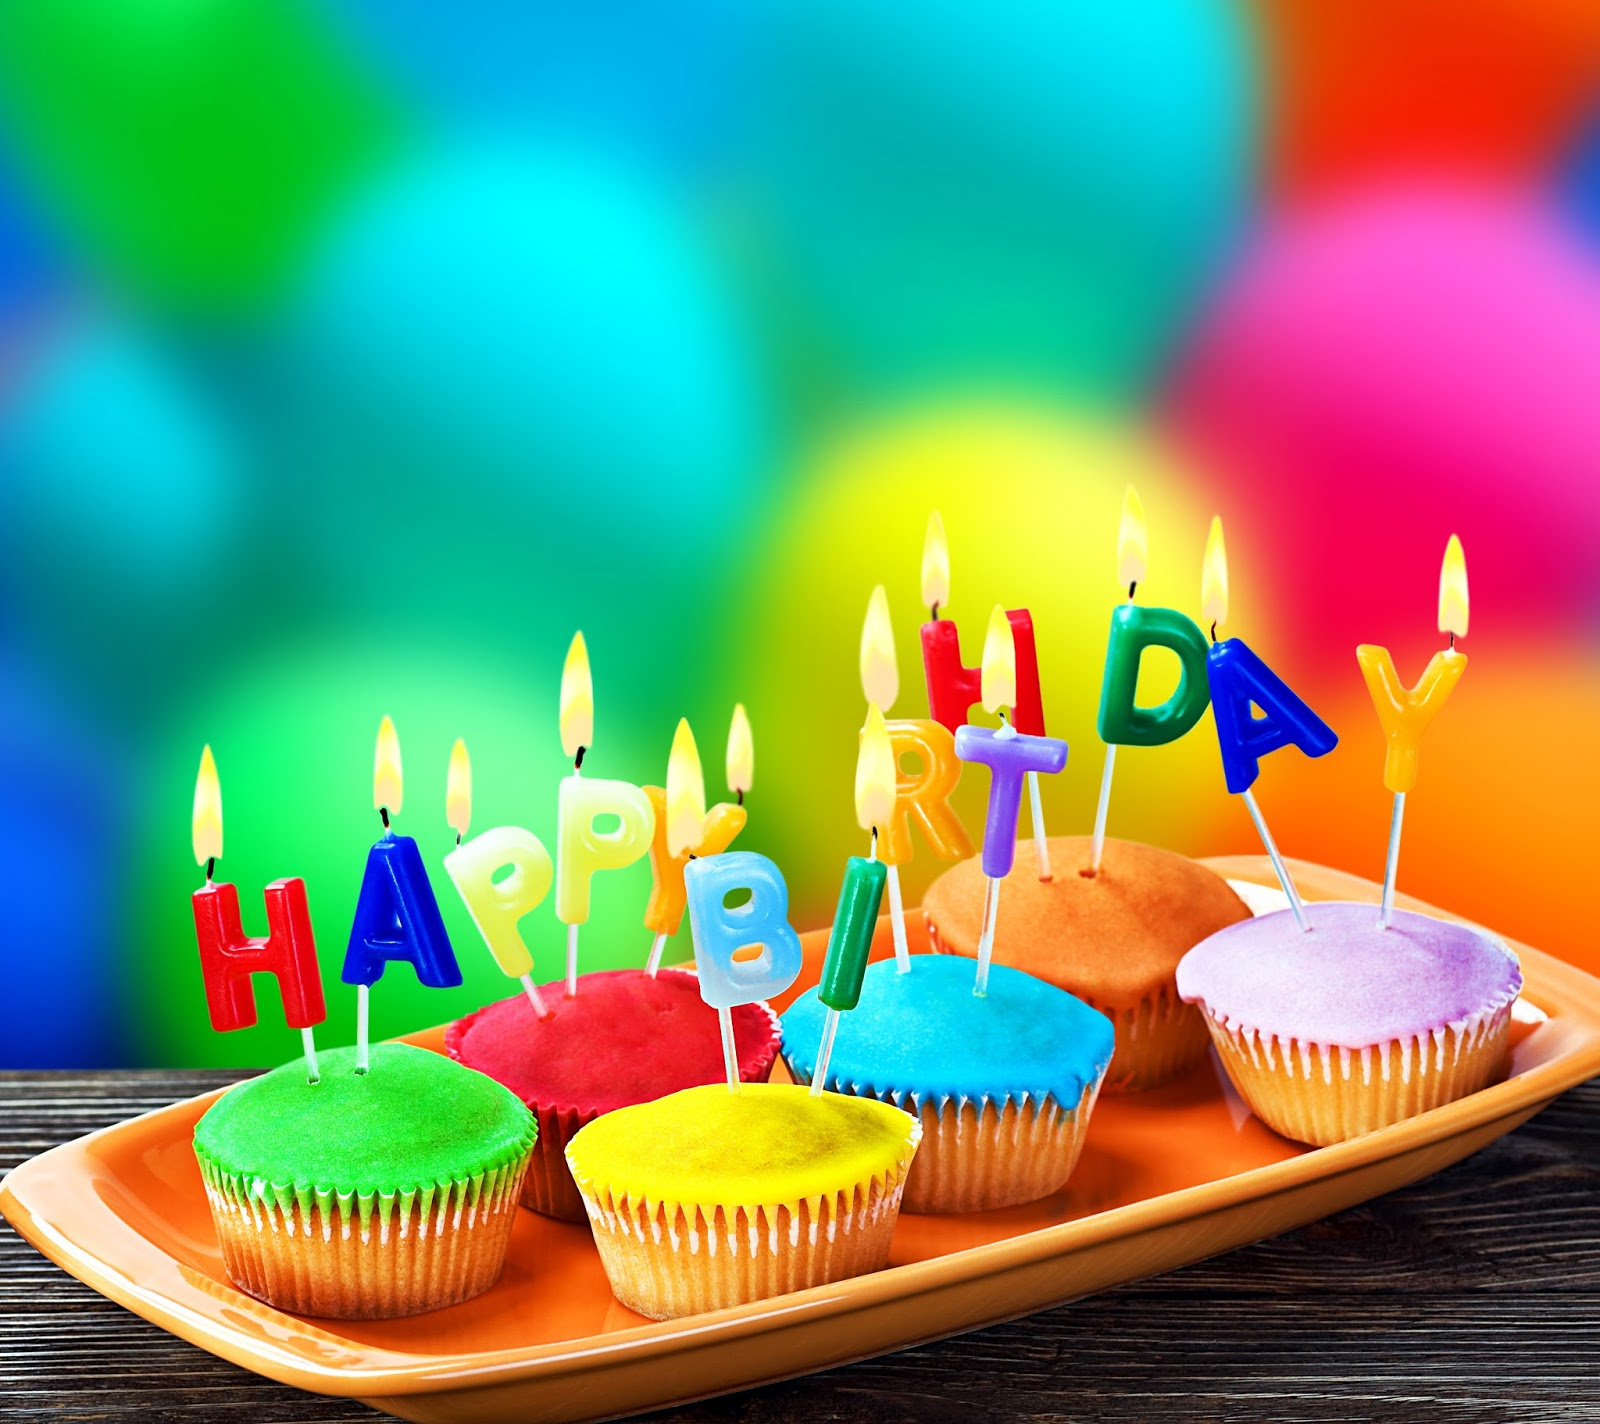 happy birthday wishes hd ; 20-Awesome-Happy-Birthday-HD-Pictures-to-wish-your-Loved-Ones-3